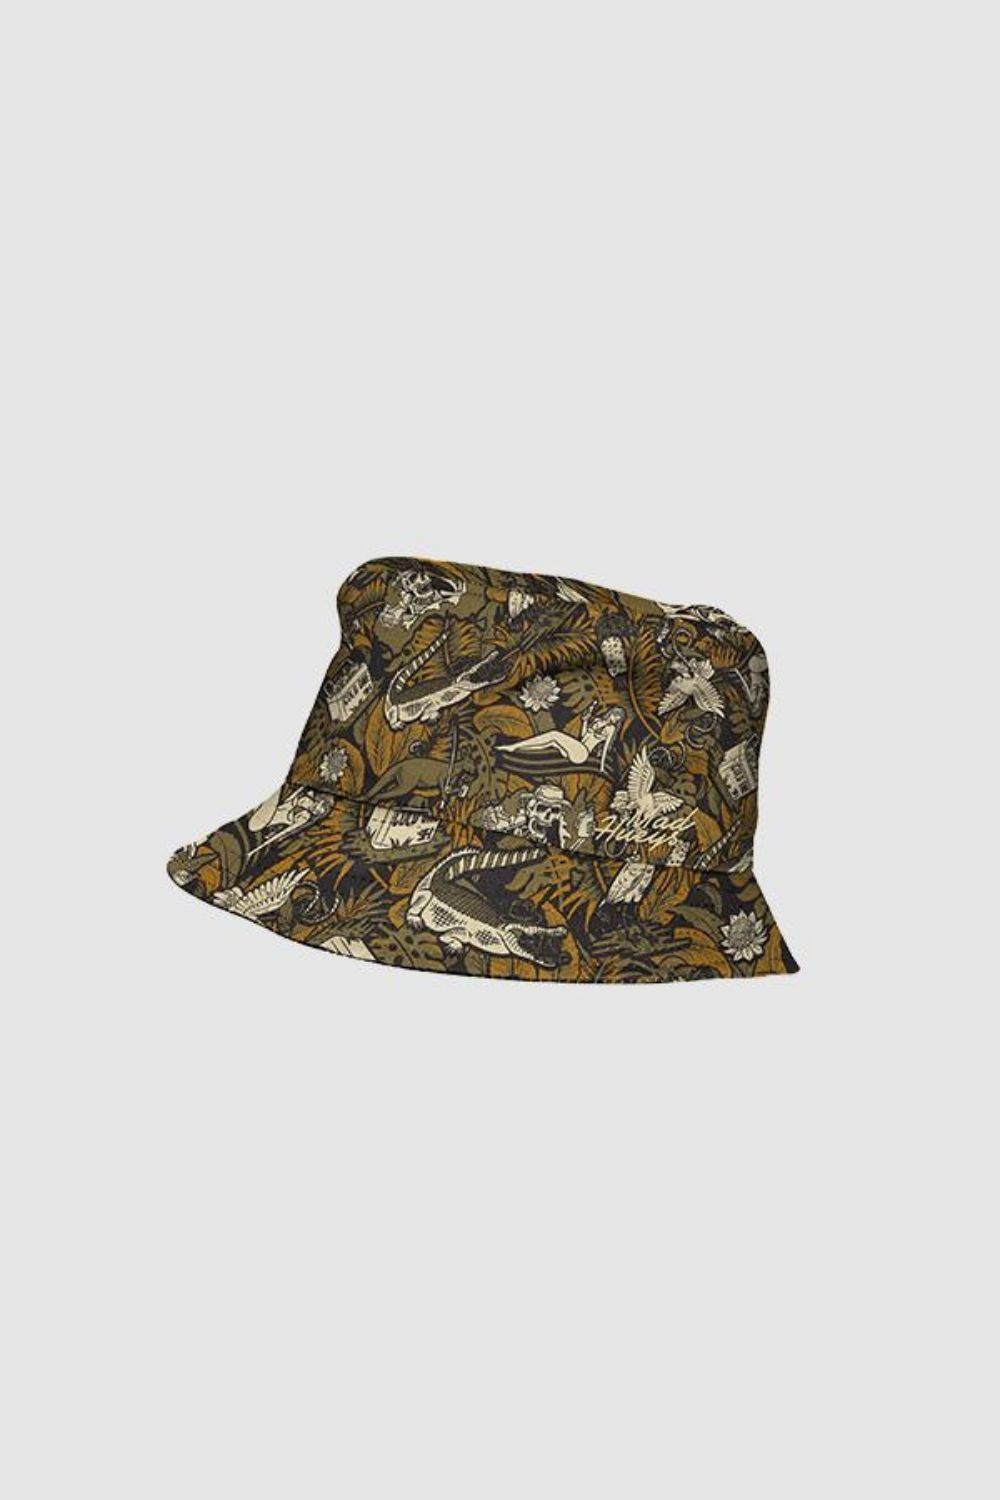 The Mad Hueys Straya Reversible Bucket Hat